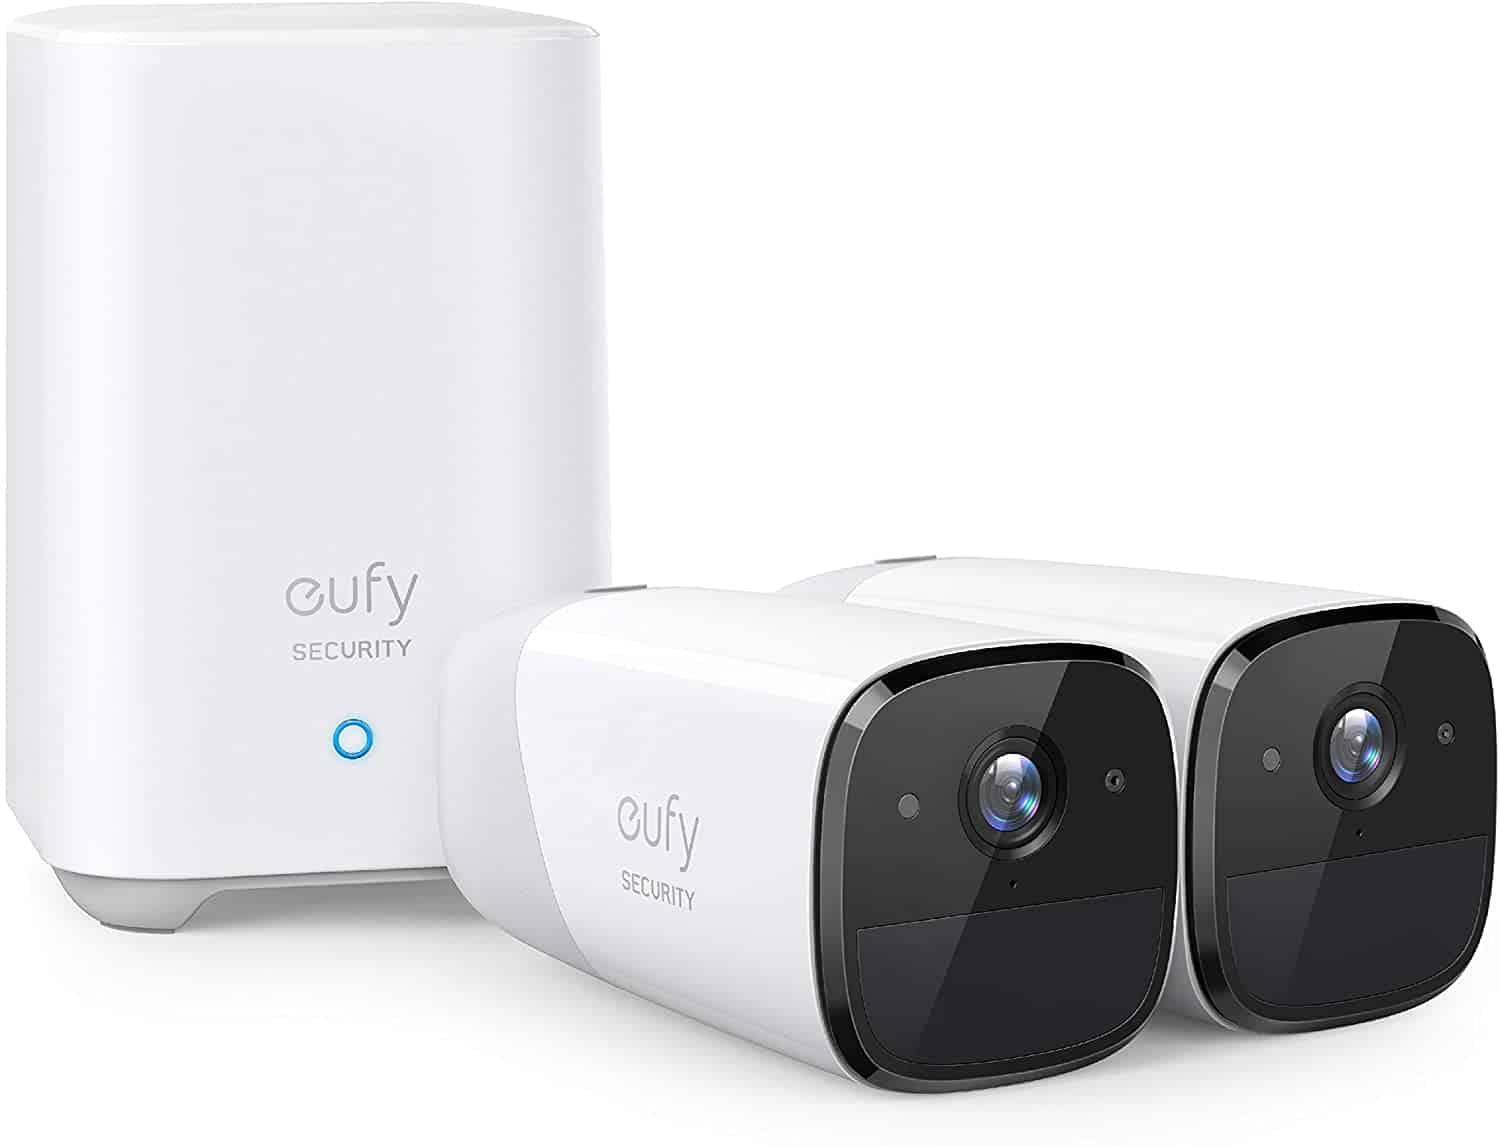 Save up to 30% on eufy Security eufycam 2 - Amazon